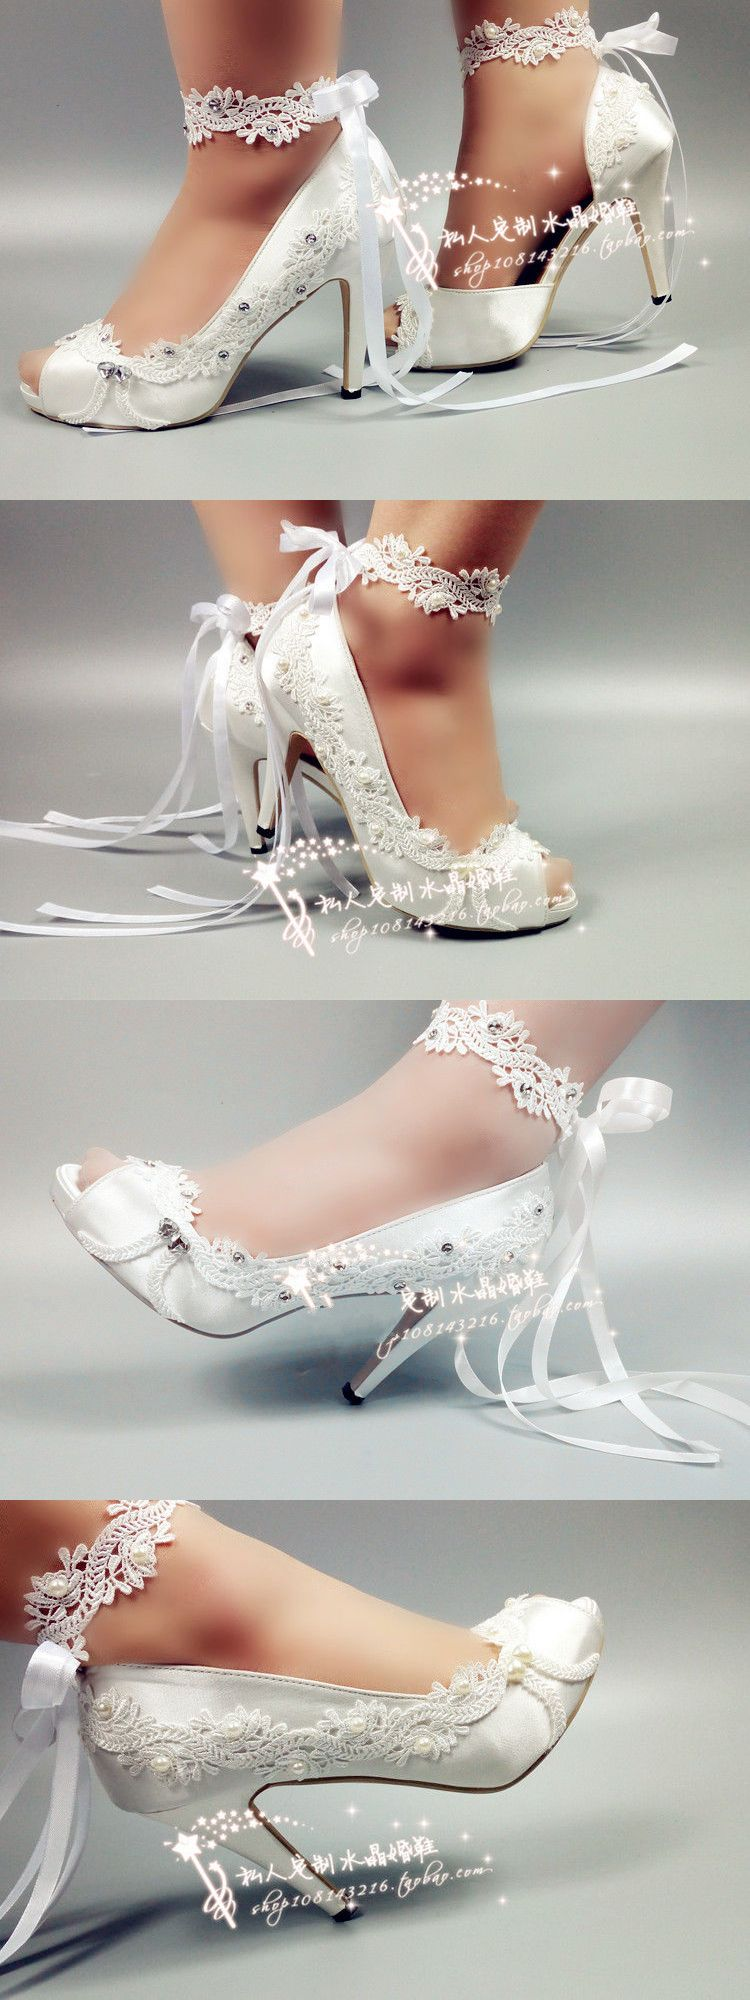 Wedding Shoes And Bridal Shoes: 3 4 Heel Satin White Ivory Lace Ribbon Ankle Open Toe Wedding Shoes Size 5-9.5 -> BUY IT NOW ONLY: $39.99 on eBay!